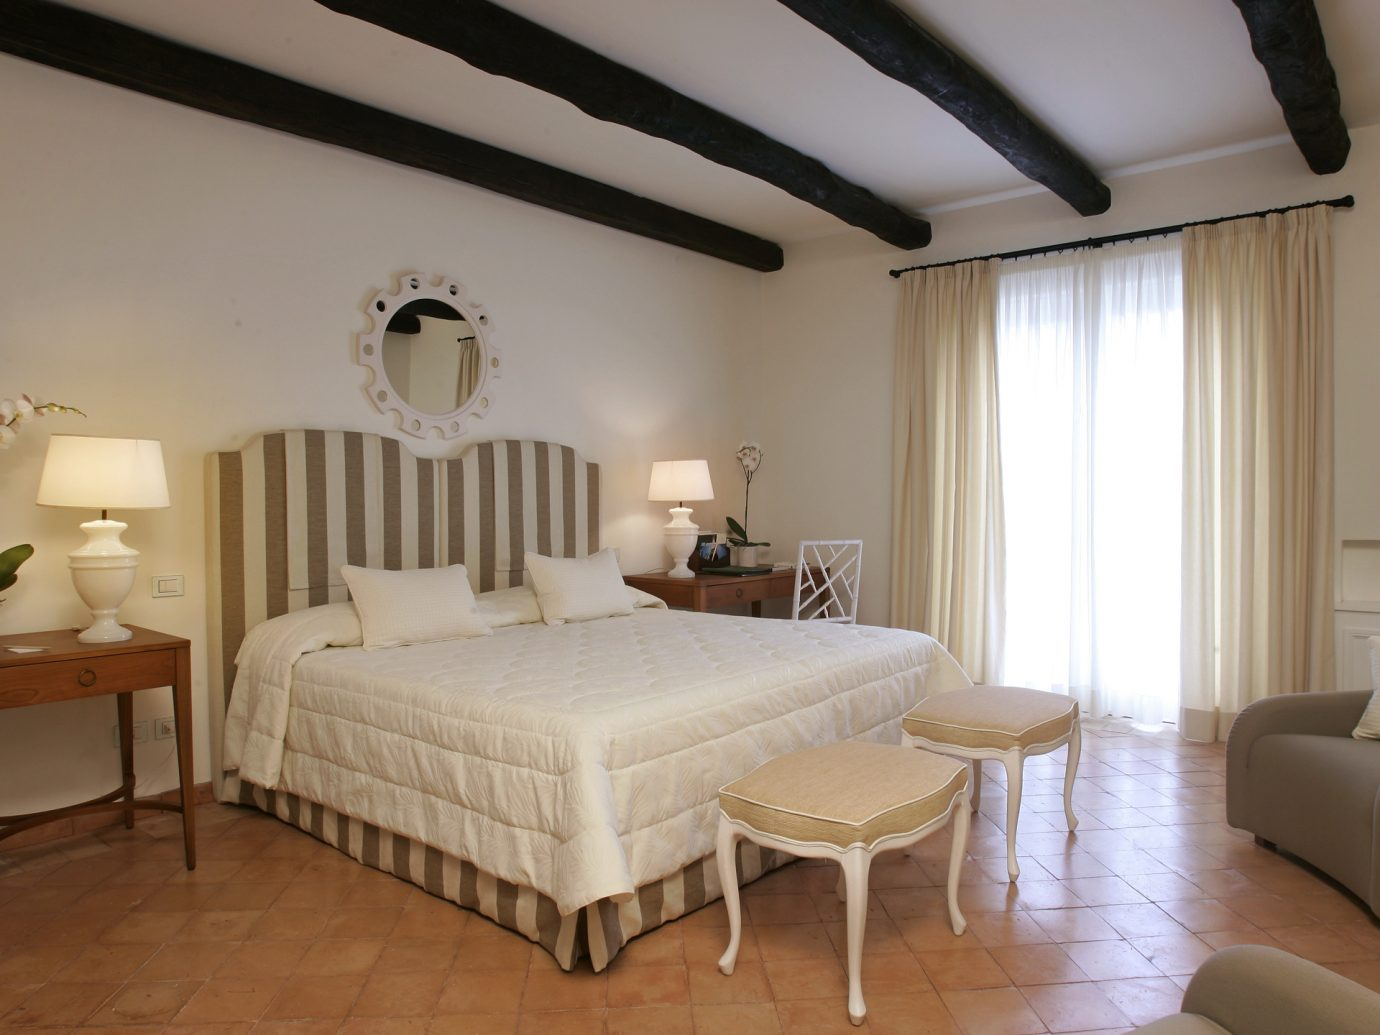 Bedroom at Il Pellicano